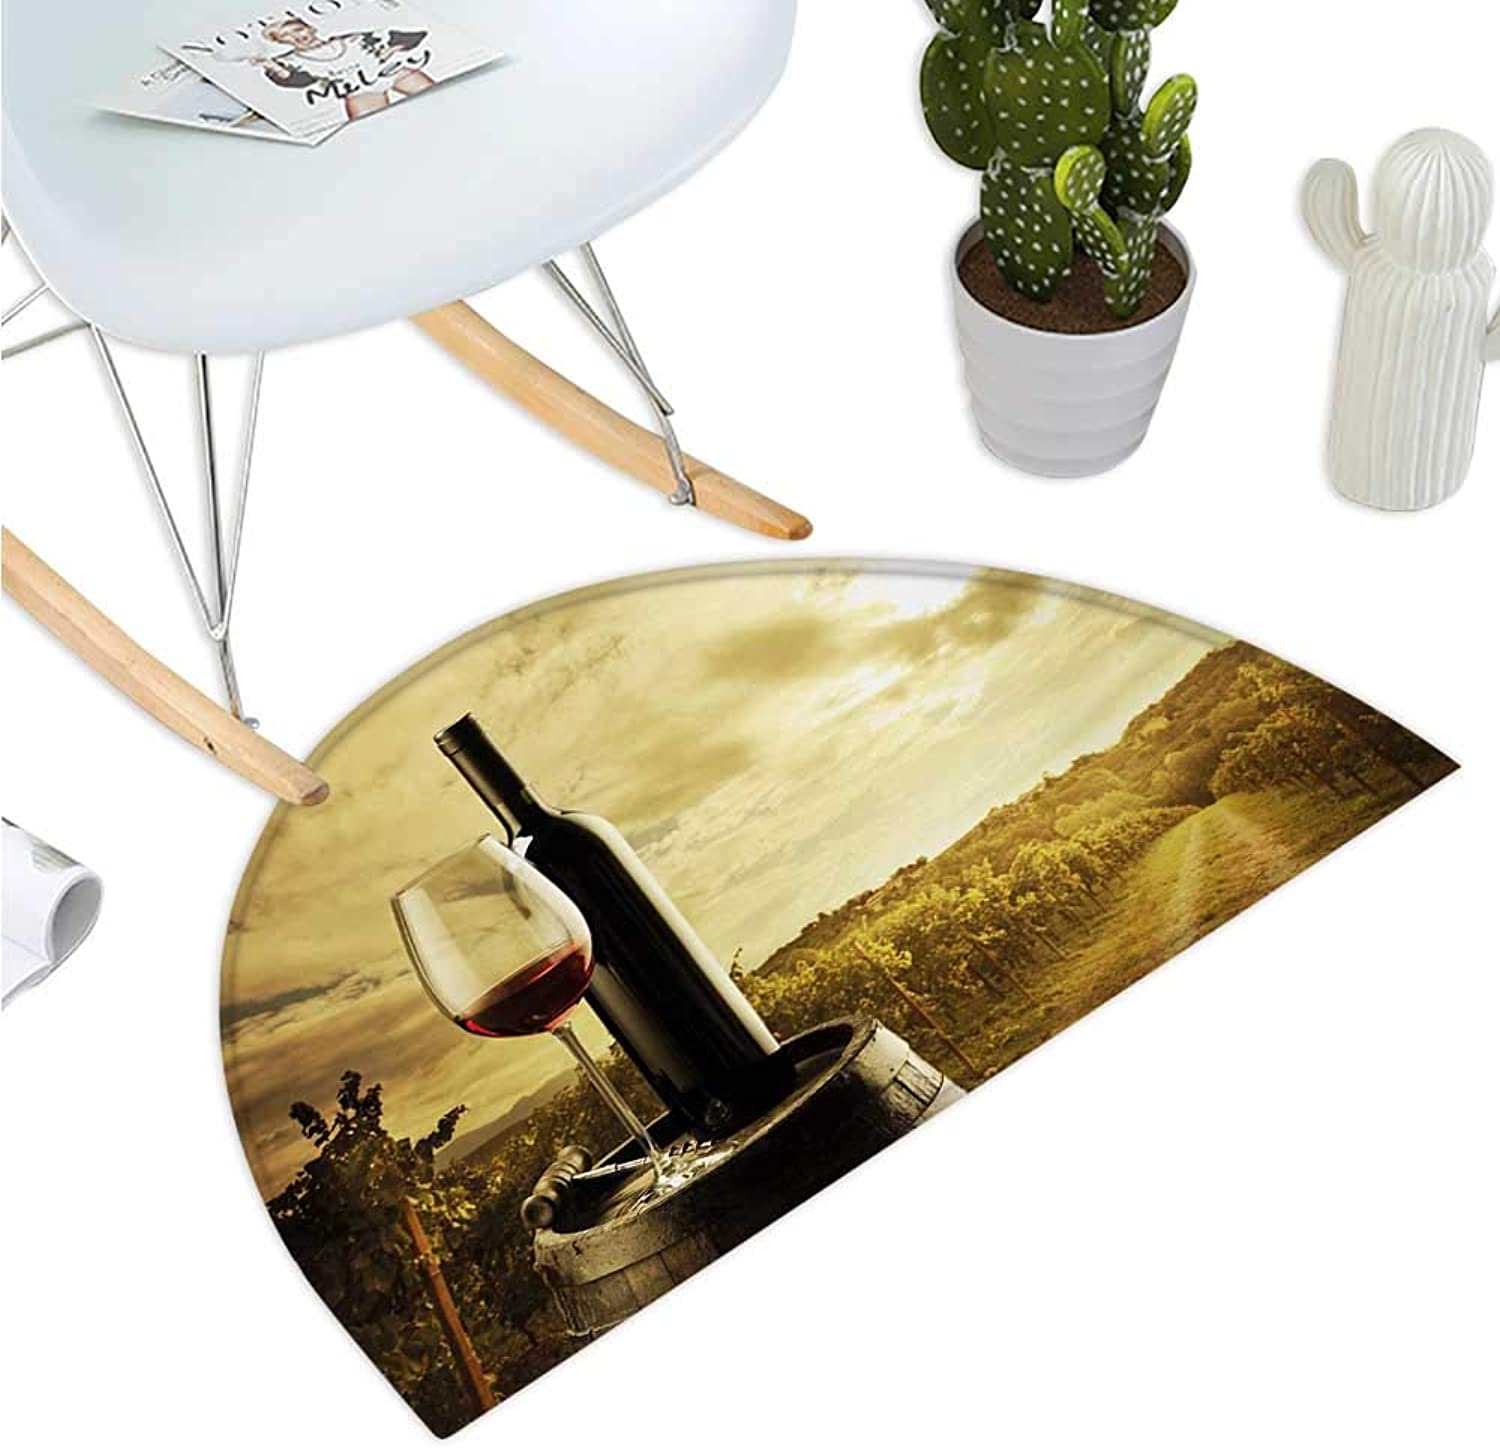 Wine Semicircular Cushion Red Wine Bottle and Glass on Wooden Barrel Dramatic Sky Agriculture Entry Door Mat H 47.2  xD 70.8  Pale Coffee Green Black